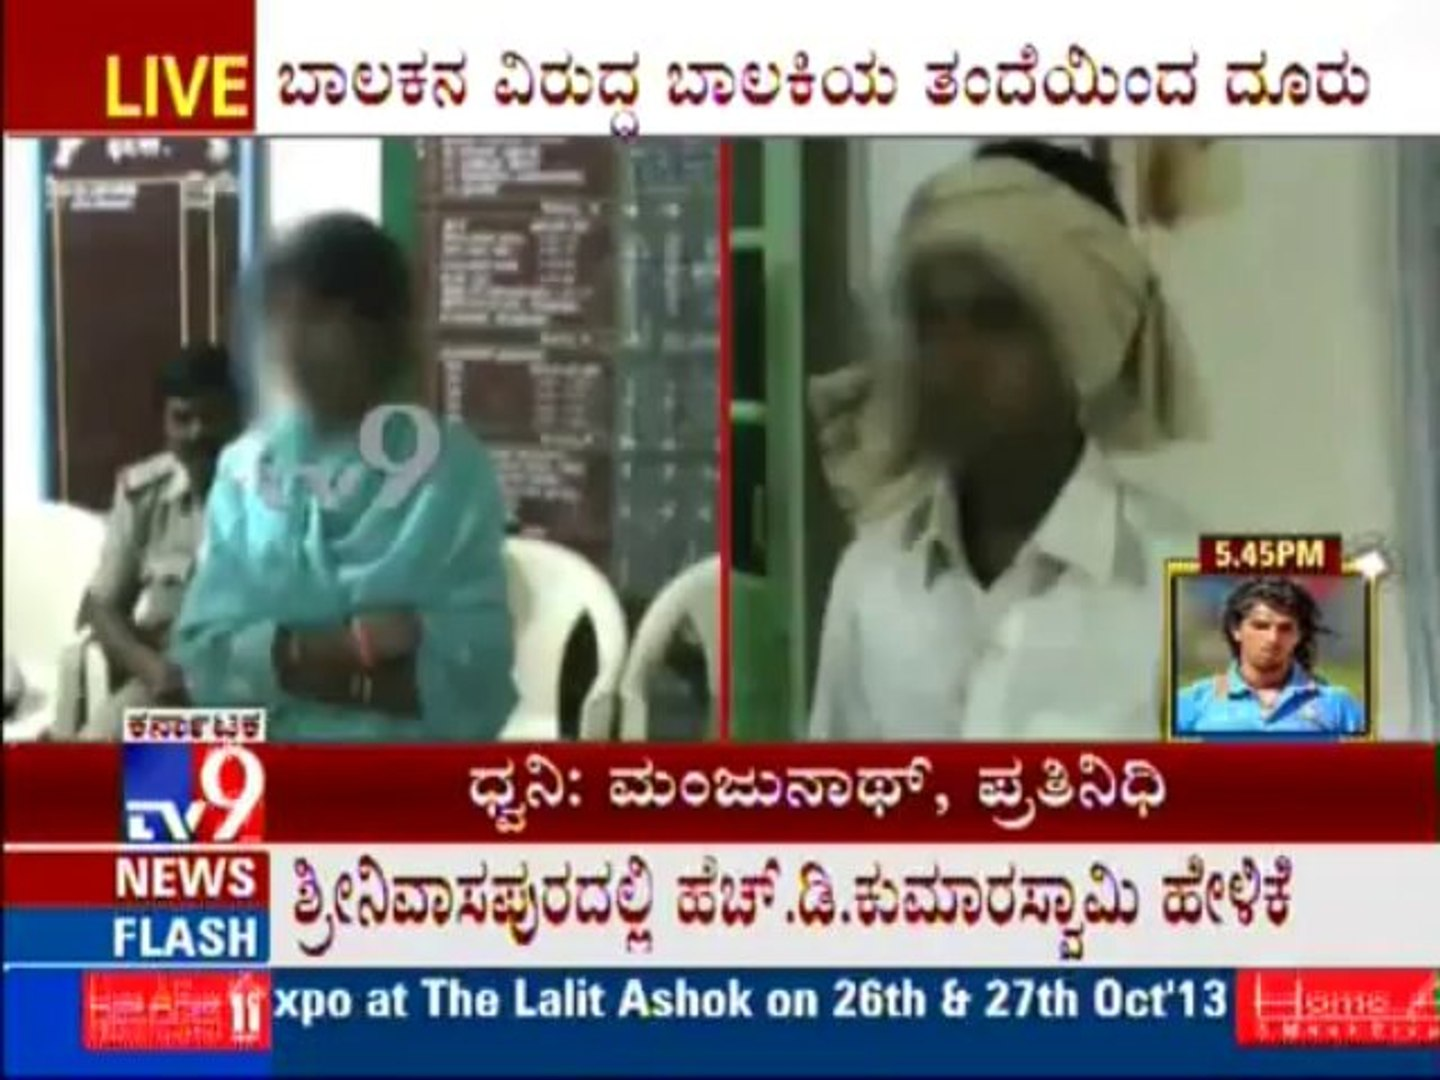 TV9 News: Yadgir: Father Catches Minor Boy 'Sexually Abusing' His Minor Daughter, Arrested